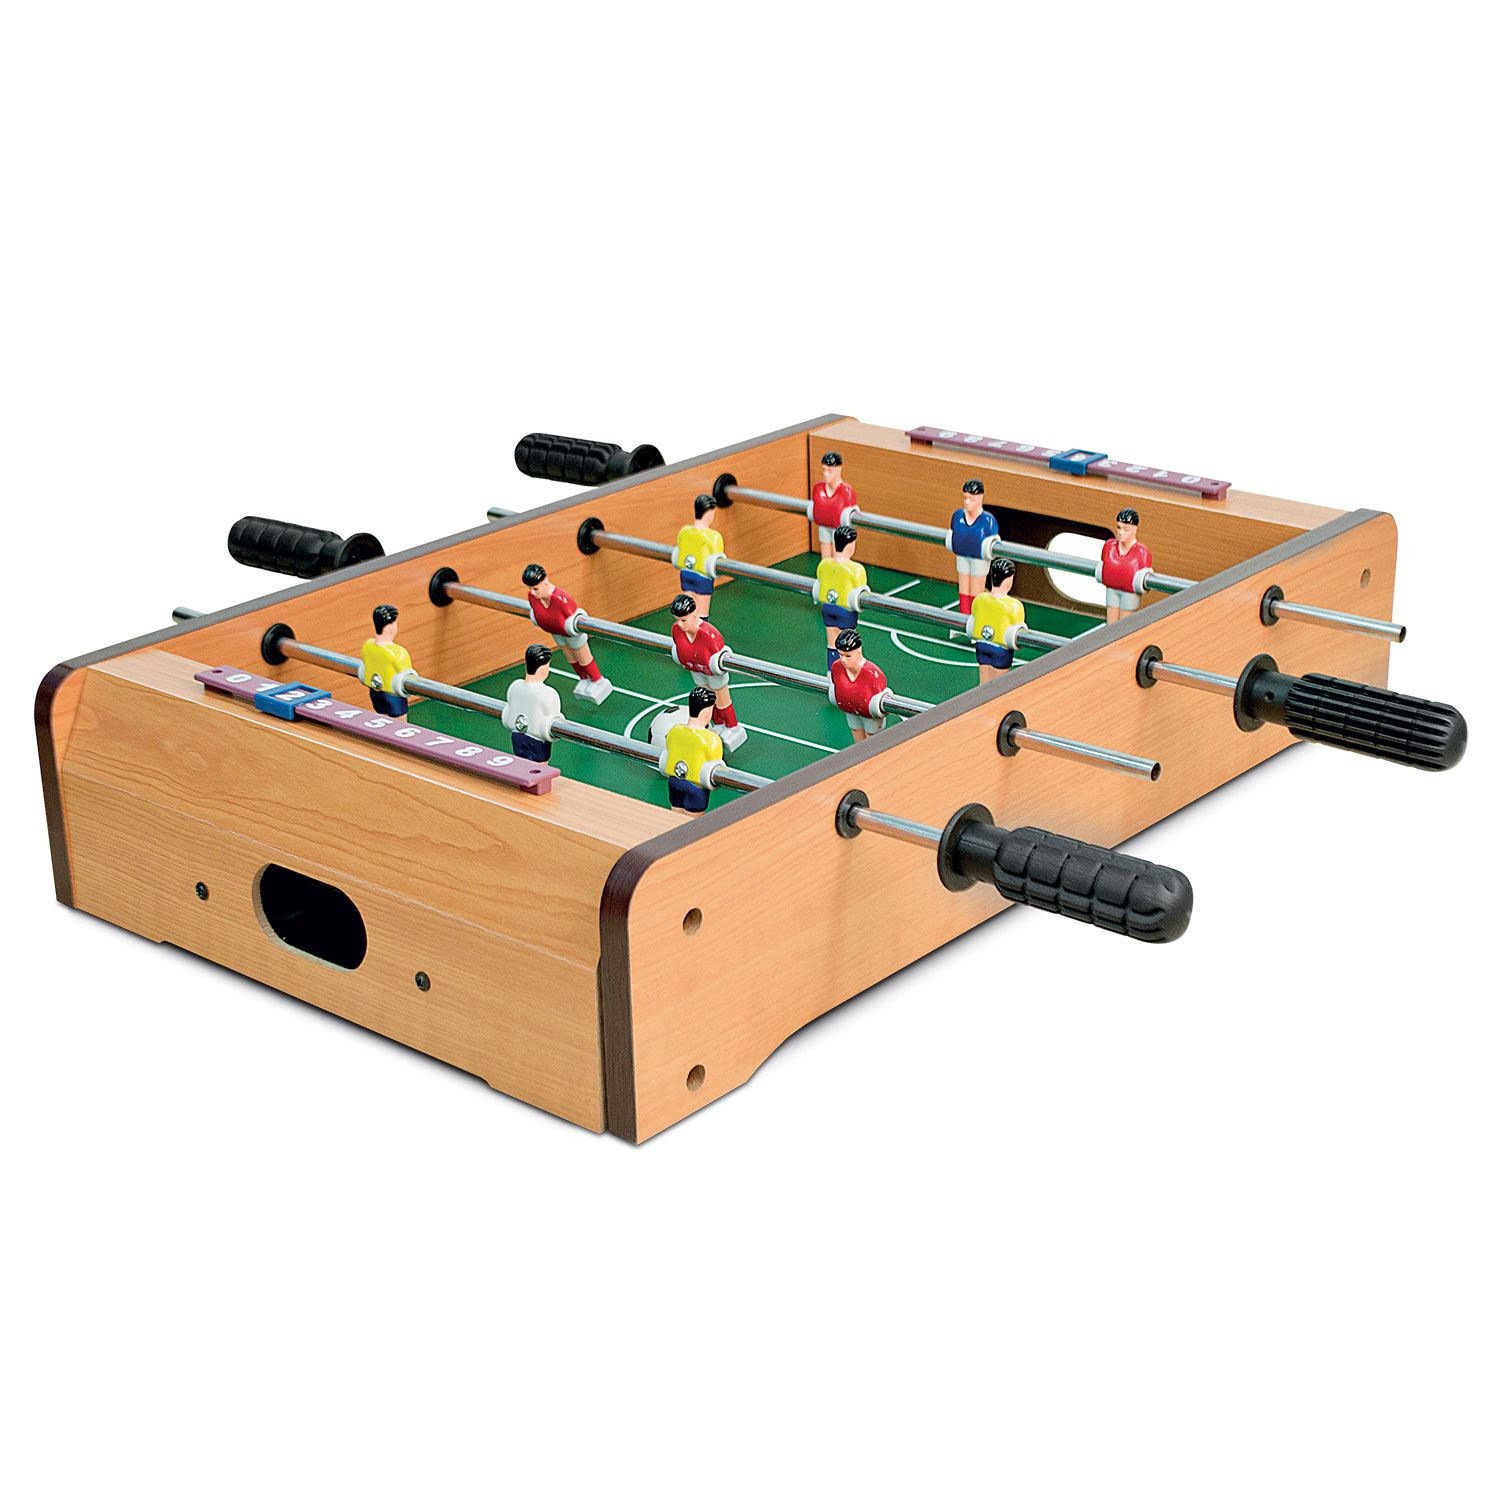 Genial Mini Table Top Air Hockey Football Pool Game